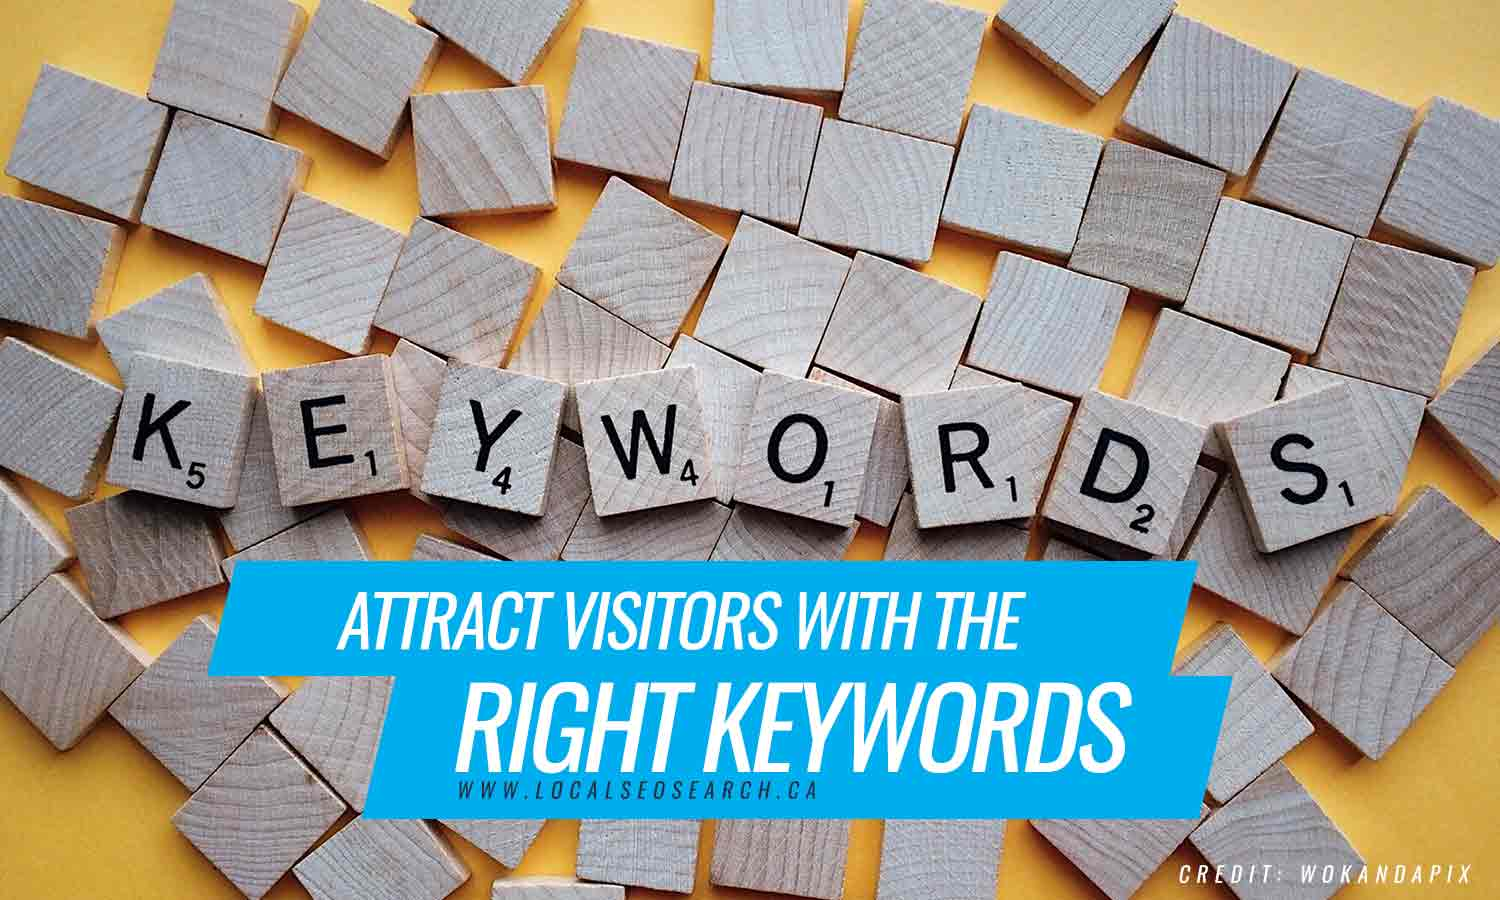 Attract visitors with the right keywords